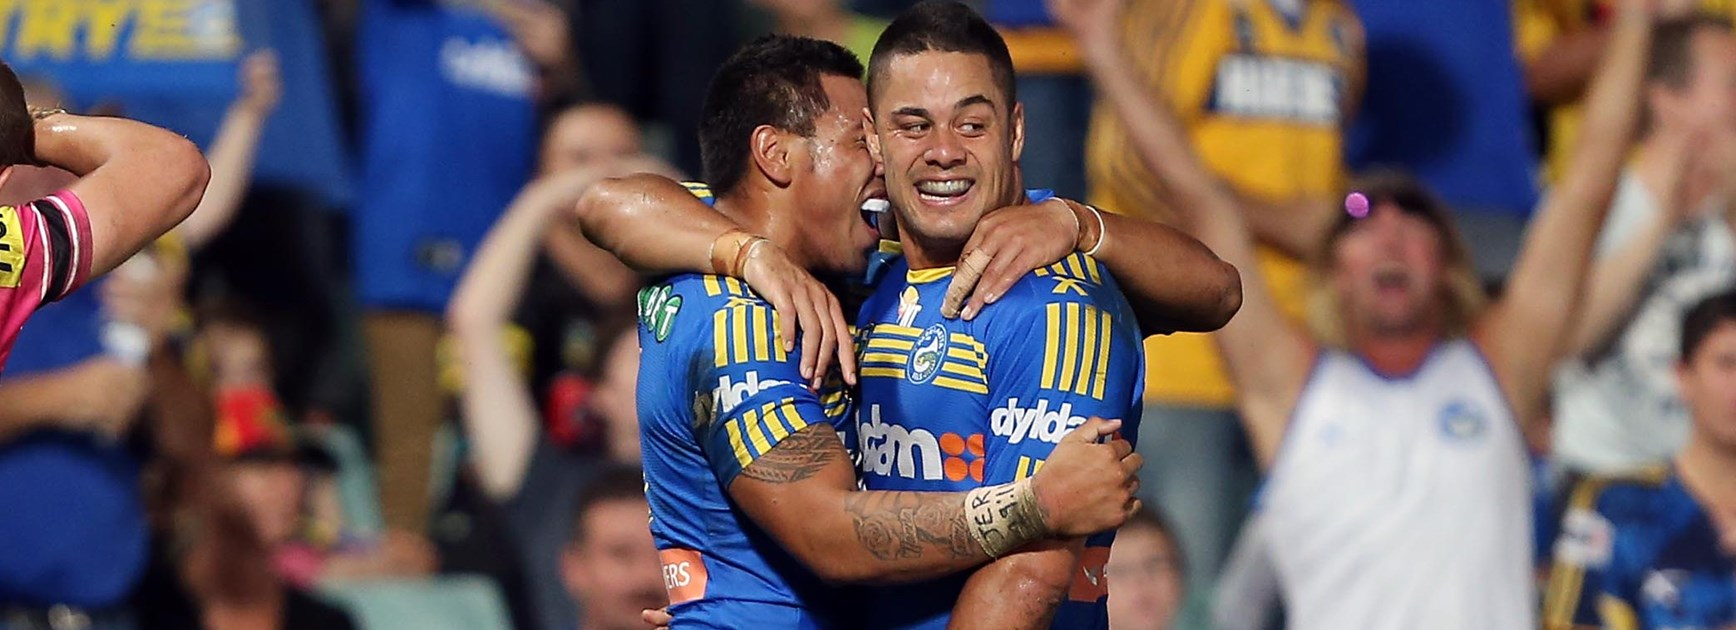 Jarryd Hayne celebrates a try for the Eels in 2014.